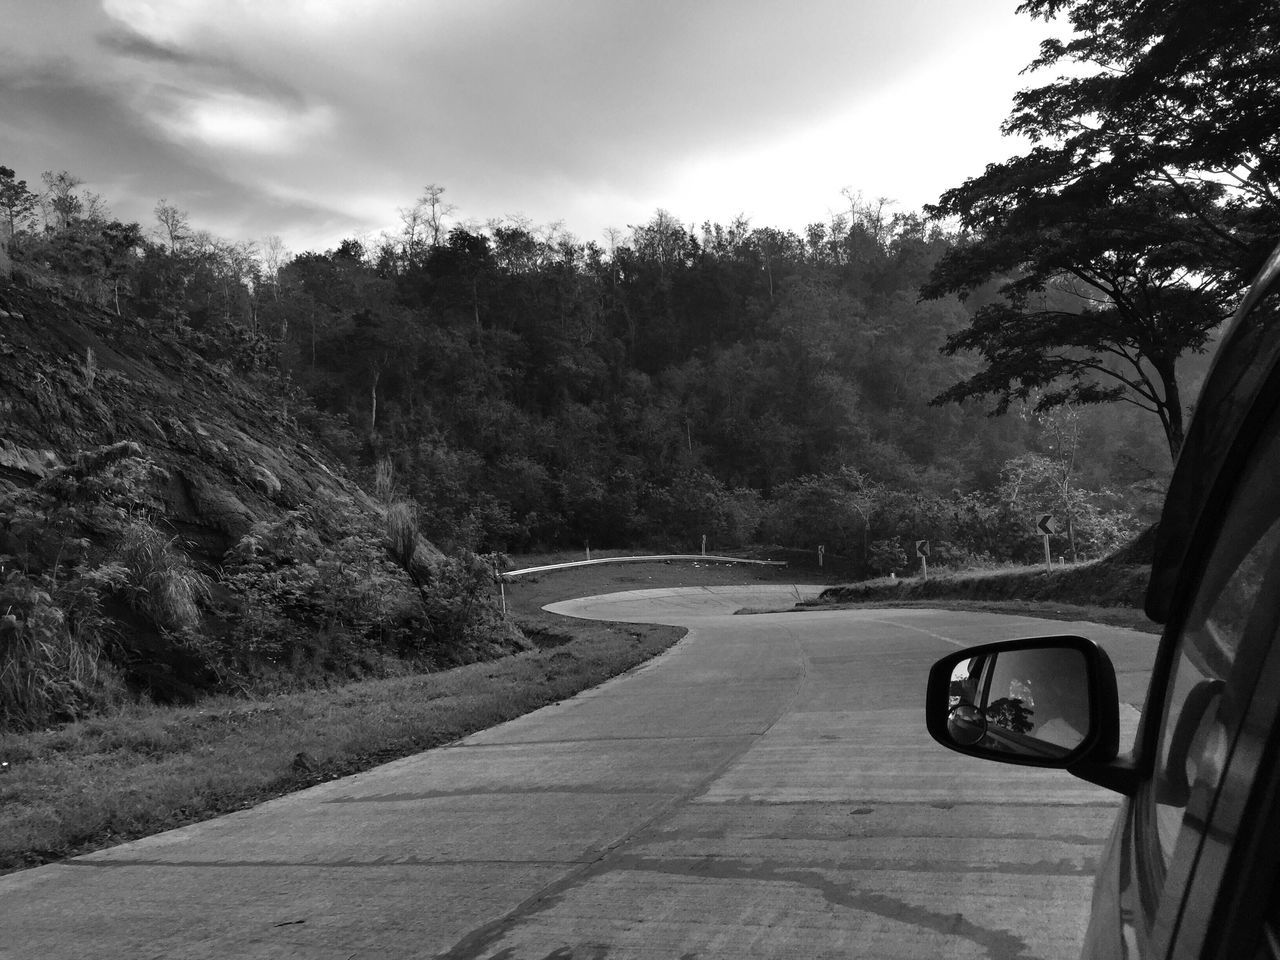 tree, road, transportation, the way forward, day, nature, growth, no people, sky, curve, outdoors, scenics, beauty in nature